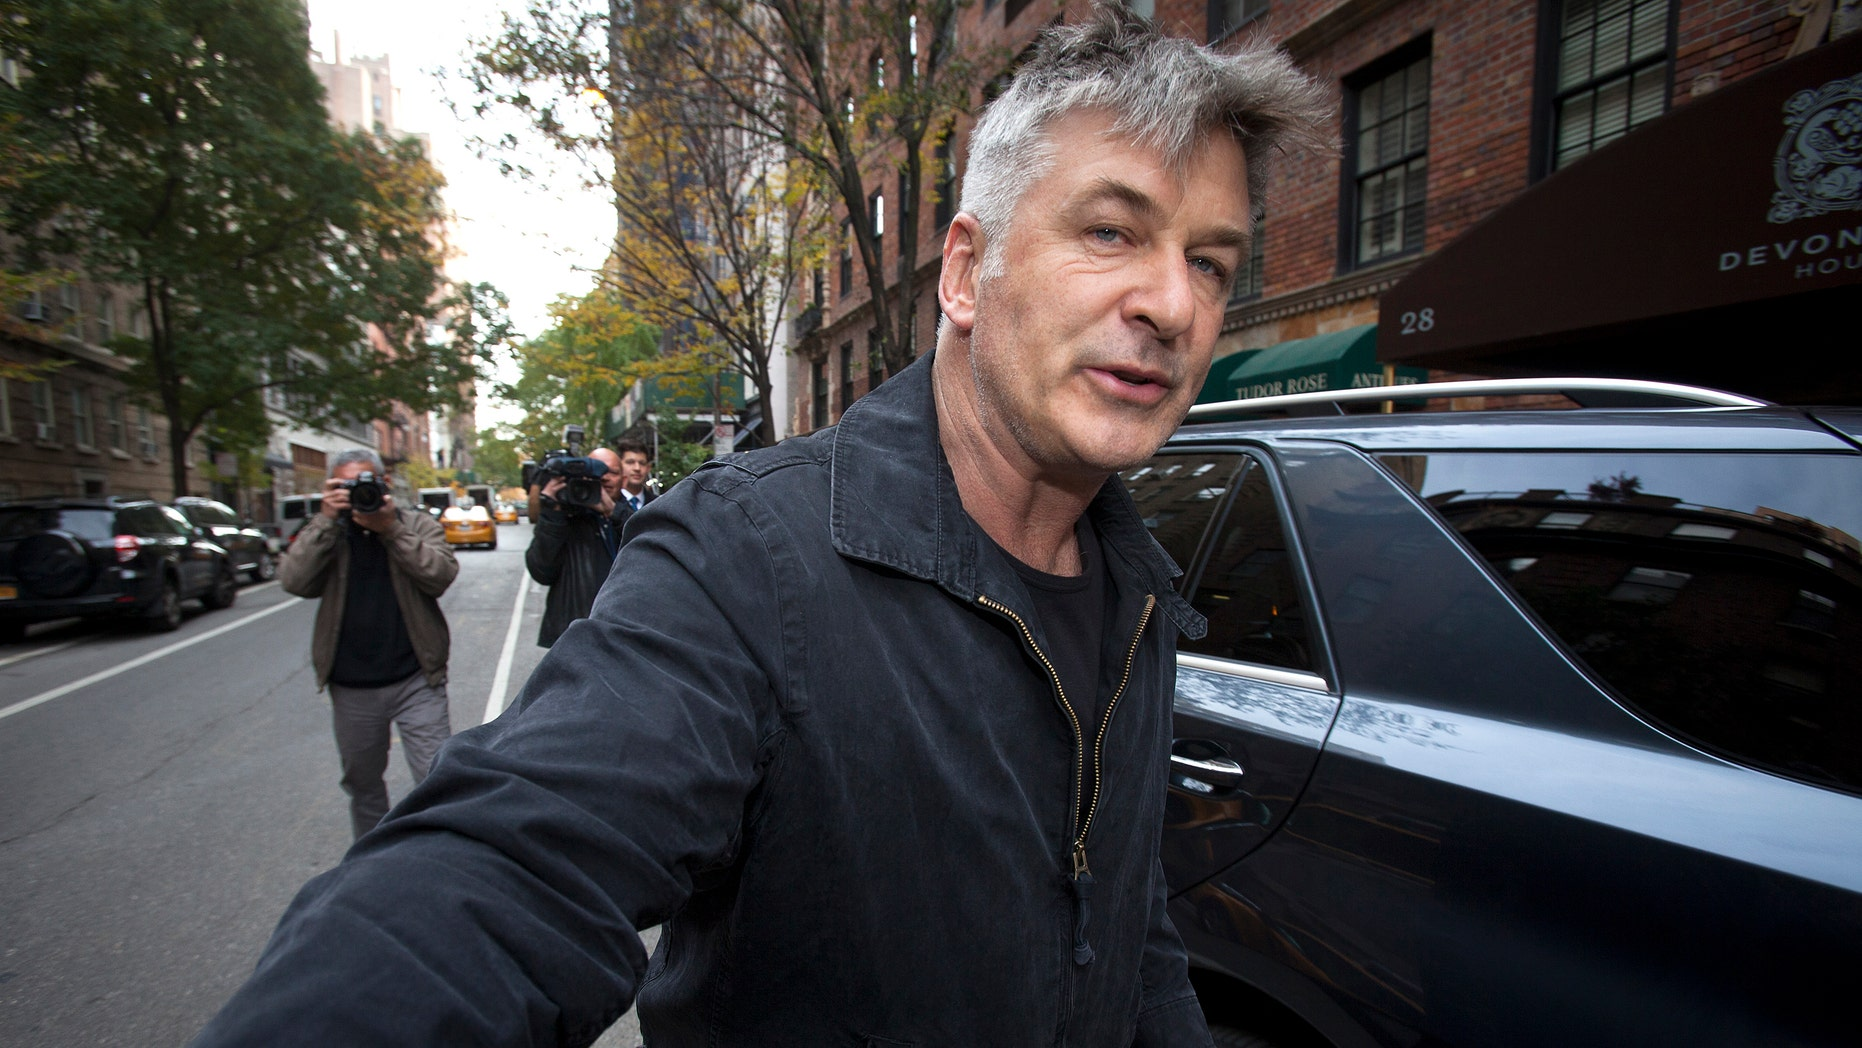 Actor Alec Baldwin shoves a photographer and tells him to move out of his way after he arrived in his SUV at the building where he lives in New York November 15, 2013. (REUTERS/Carlo Allegri)